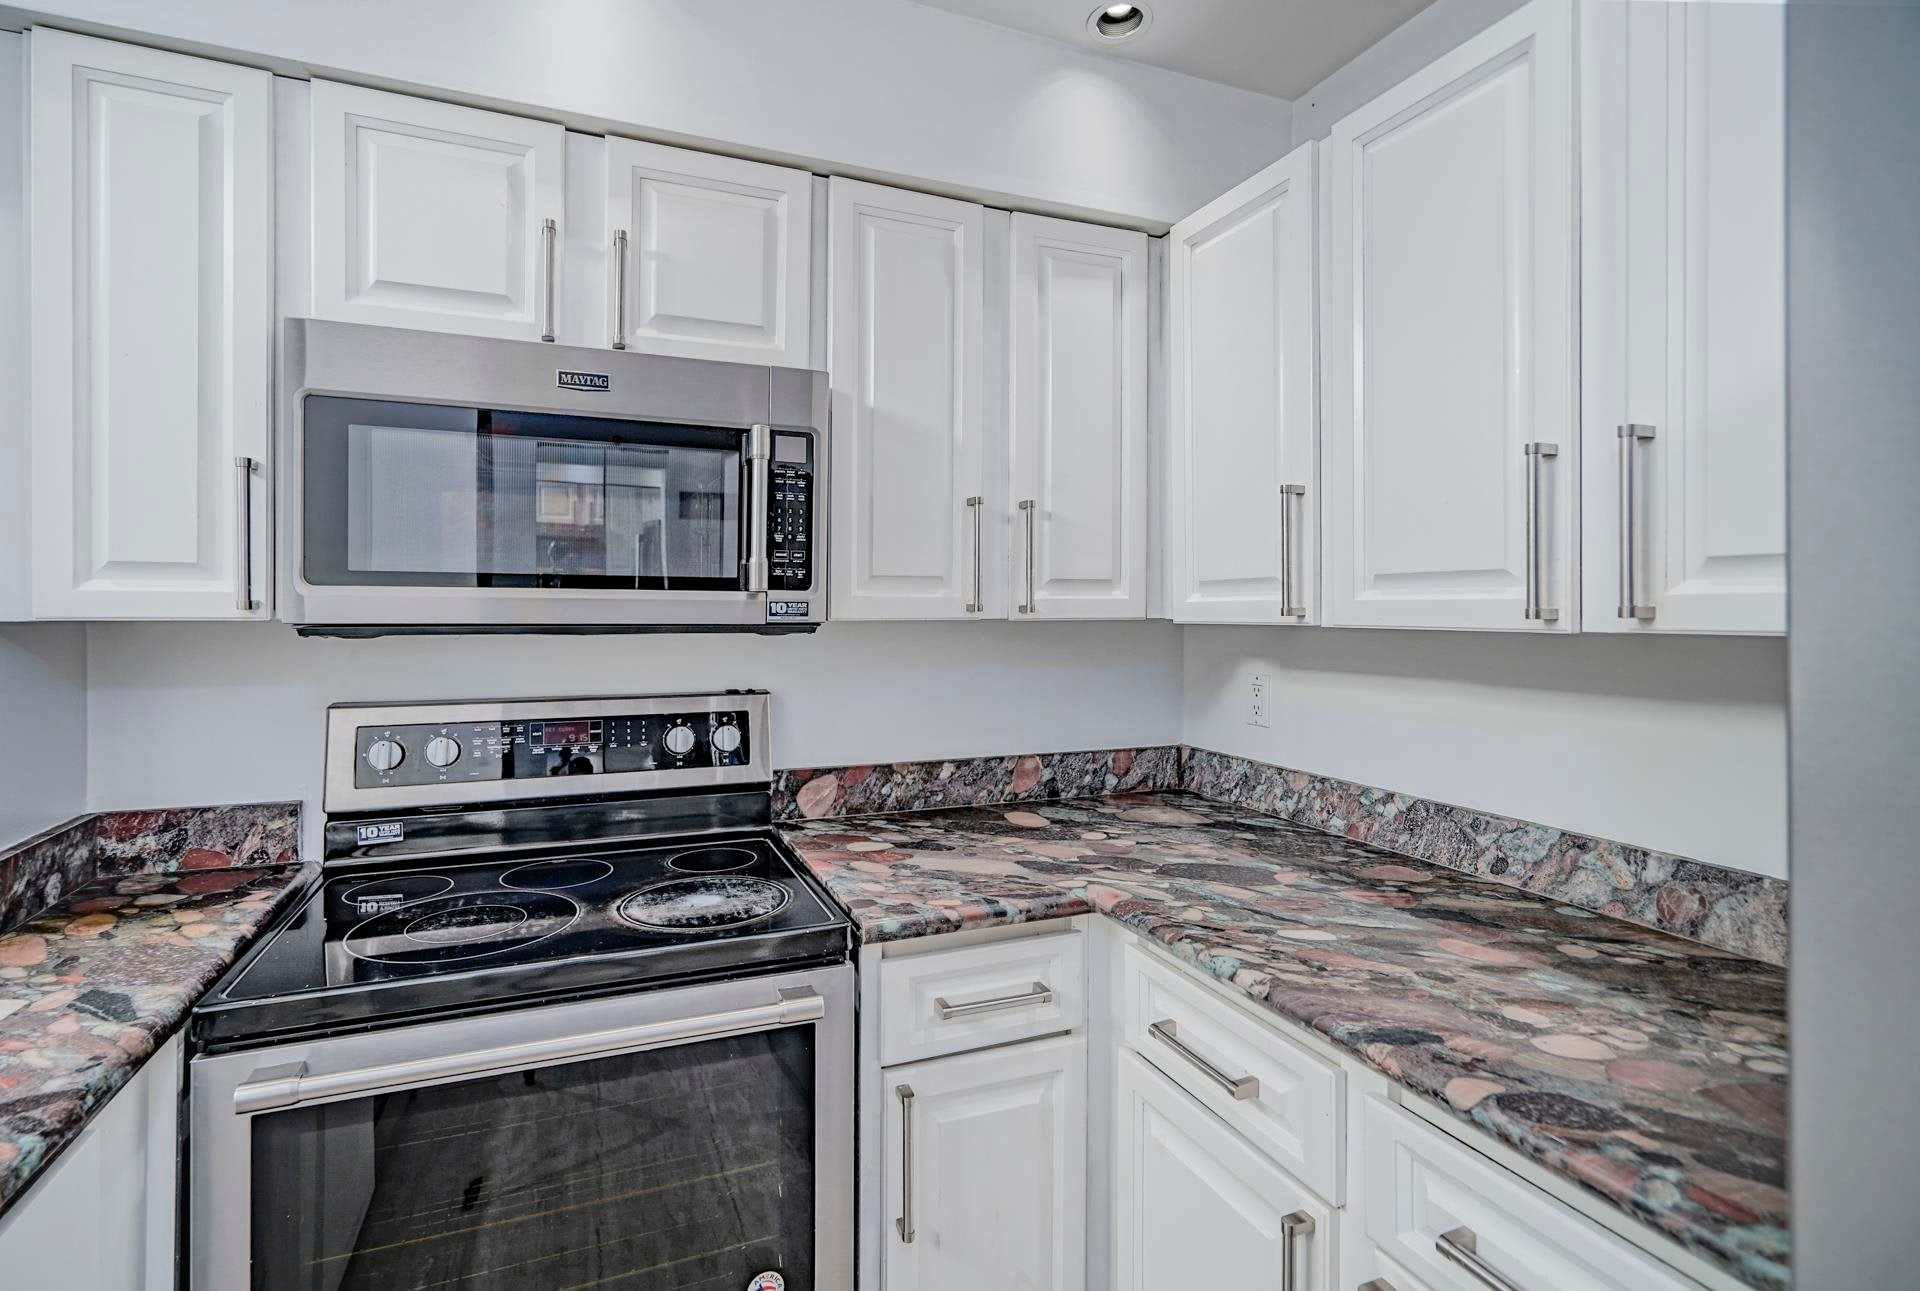 301 3187 MOUNTAIN HIGHWAY - Lynn Valley Apartment/Condo for sale, 2 Bedrooms (R2603681) - #11